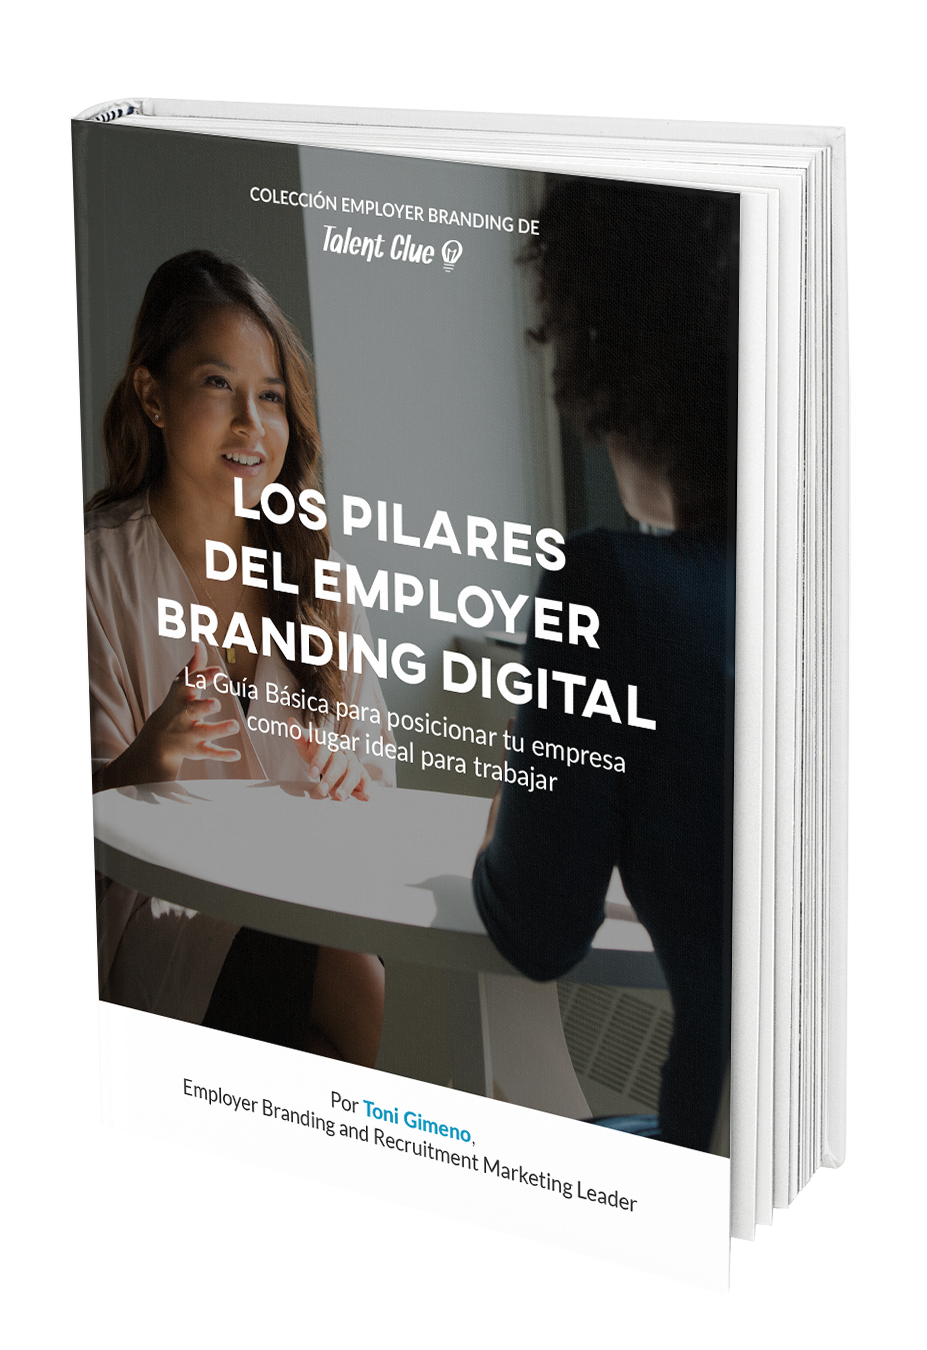 Los Pilares del Employer Branding Digital